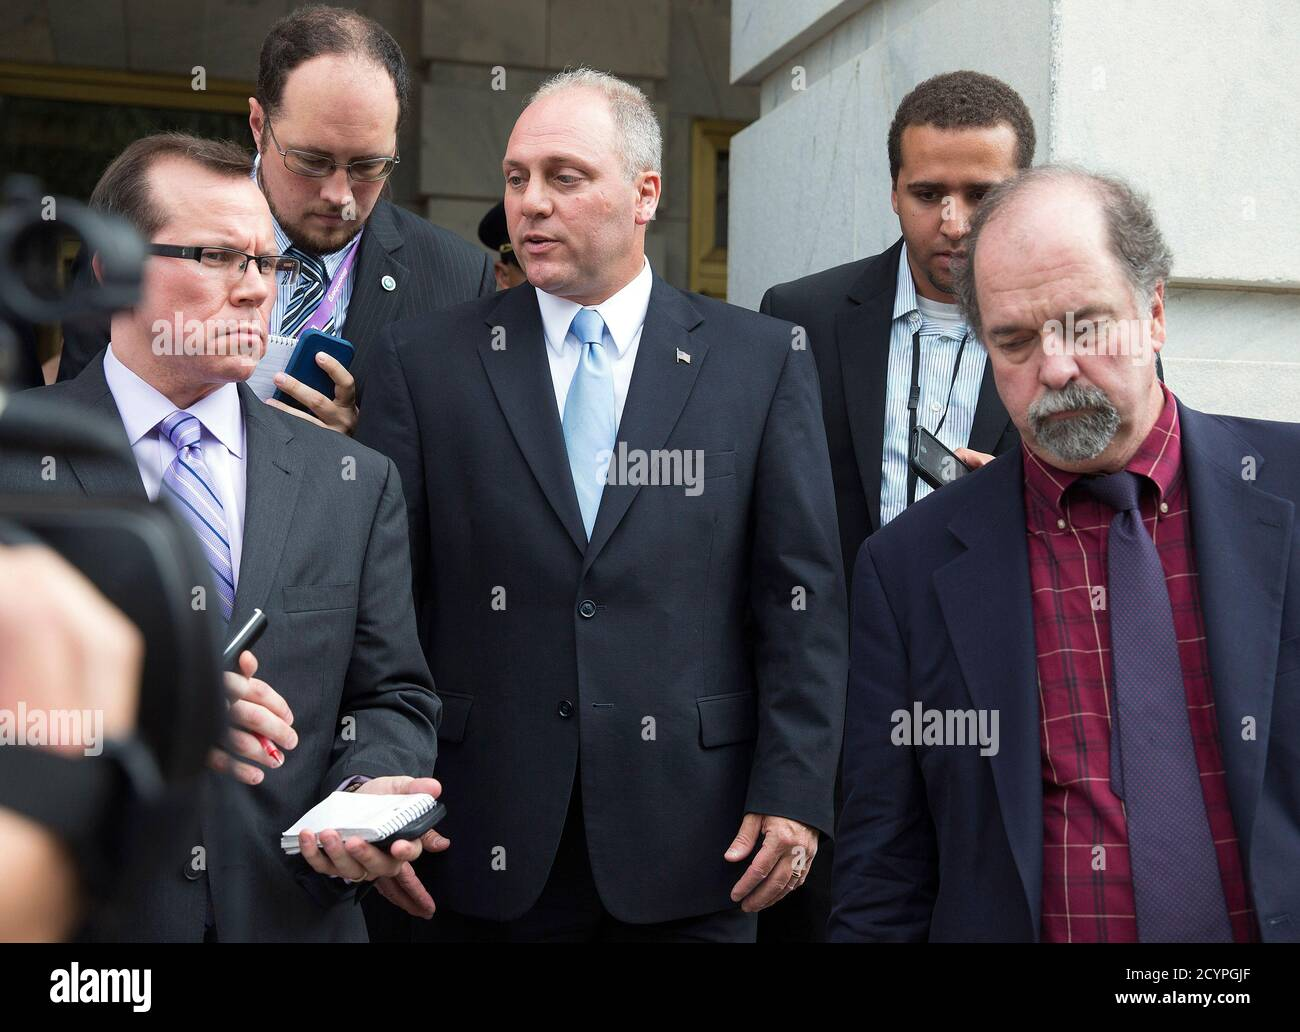 Newly elected House Majority Whip Steve Scalise (R-LA) (C) speaks to reporters as he walks to the Capitol in Washington June 19, 2014. House of Representatives Republicans on Thursday chose an ally of Speaker John Boehner for the number 2 job in the chamber and, in a victory for the party's conservative wing, elevated Southern lawmaker Scalise to a leadership role. REUTERS/Joshua Roberts (UNITED STATES - Tags: POLITICS ELECTIONS) Stock Photo